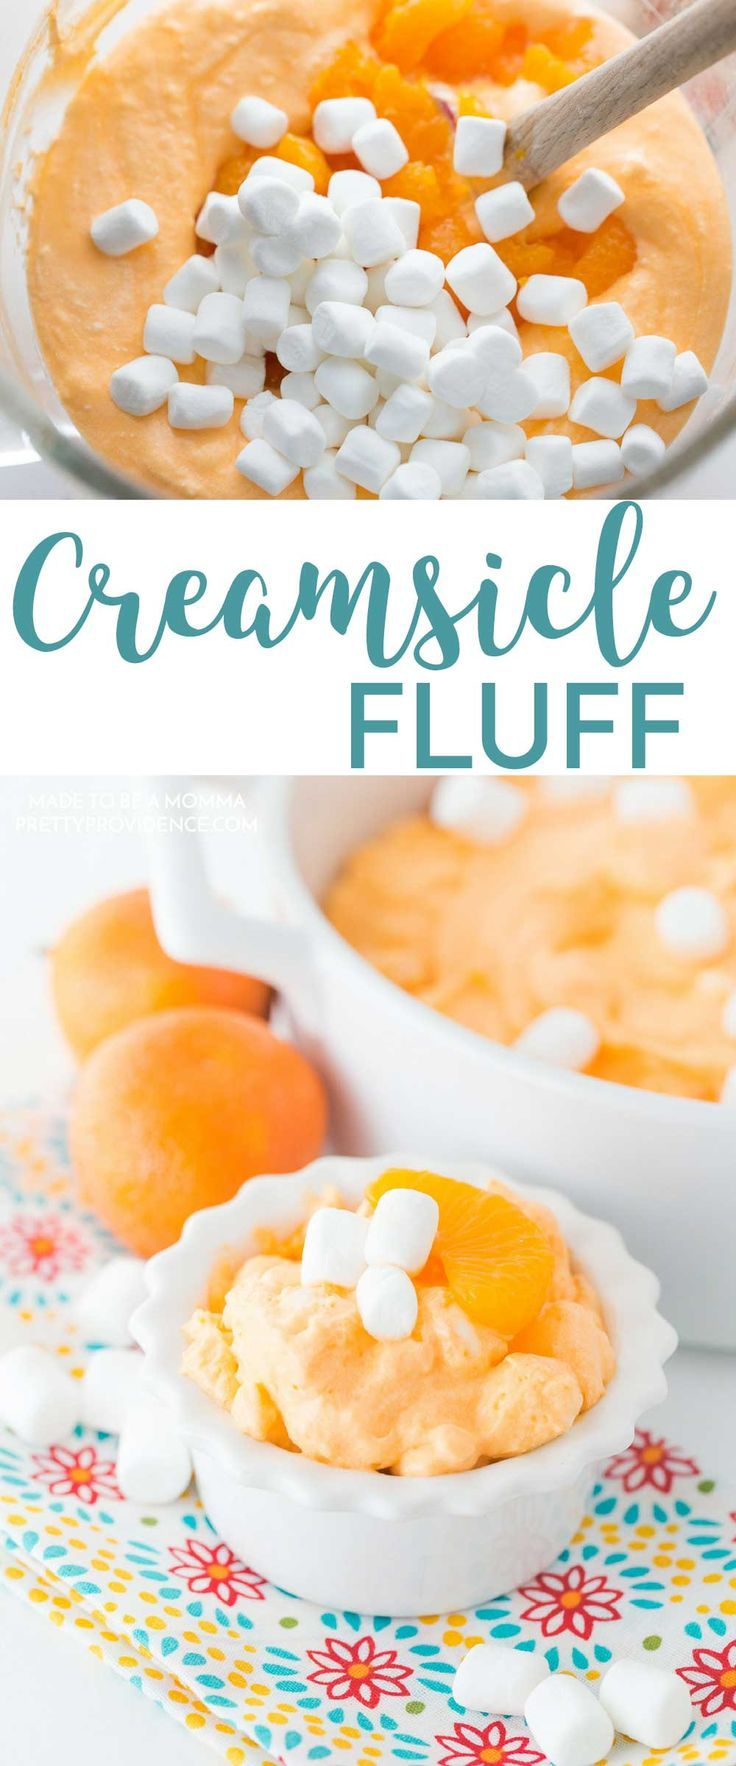 Creamsicle Orange Fluff Salad